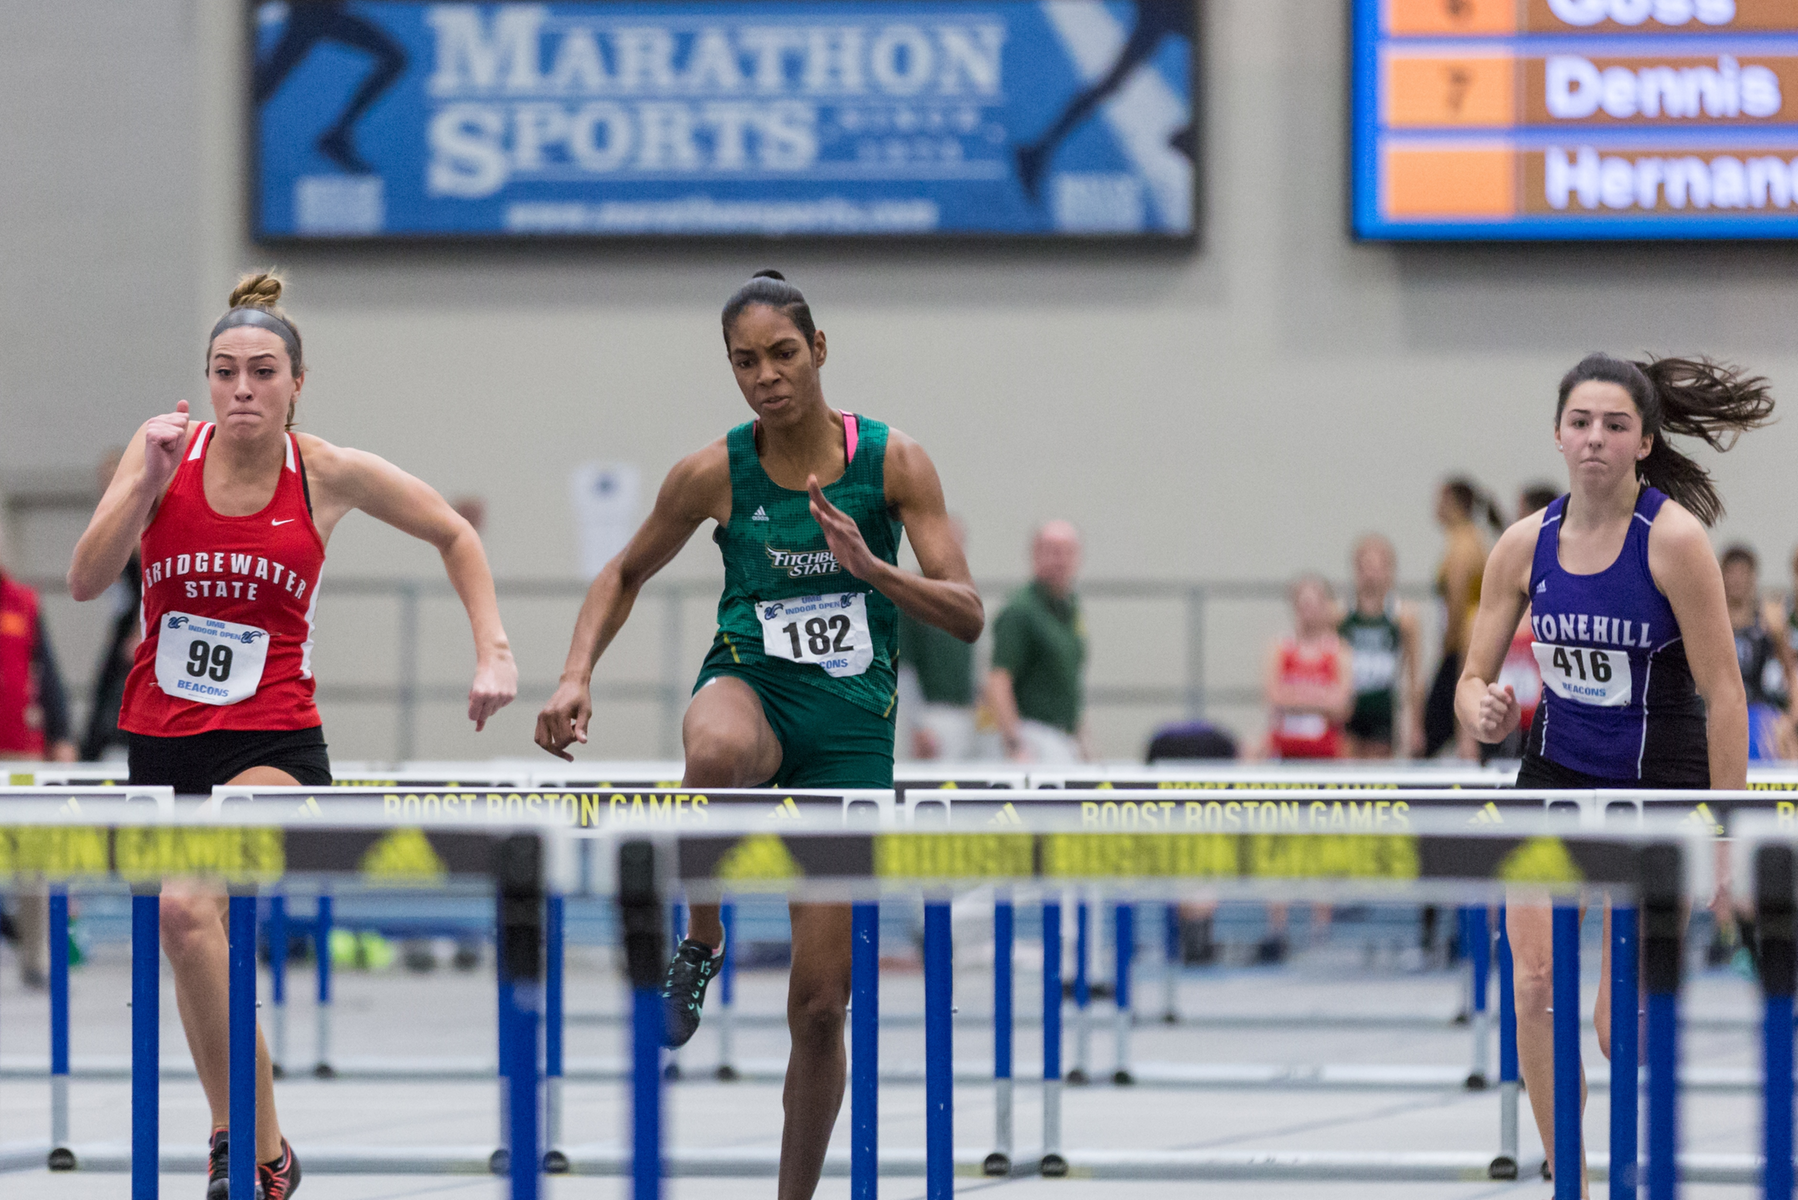 Fitchburg State Places Fourth At MASCAC Championships